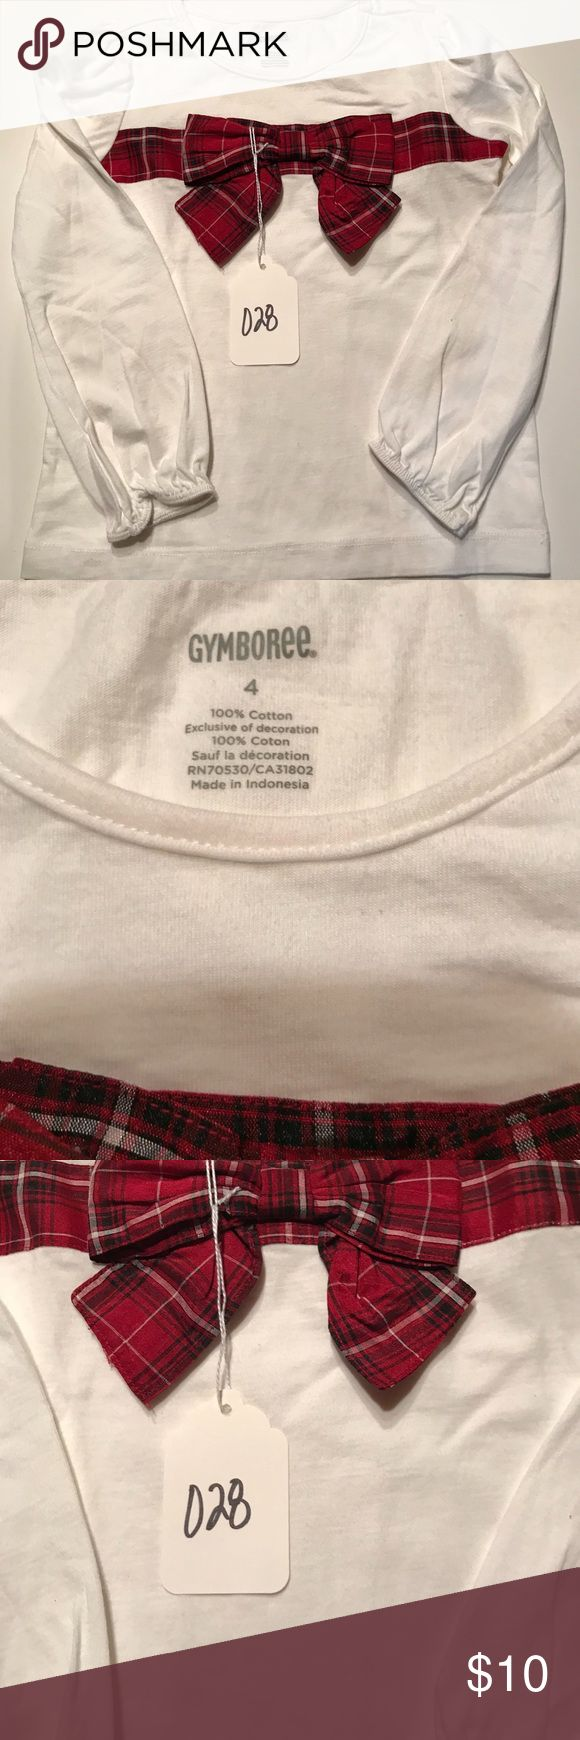 EUC Gymboree  Size 4 White Top Satin Plaid Bow *Make Me An Offer* All of my items in both my Closet and Boutique come from a smoke free and pet free environment. Pre-owned items are only owned by one owner which is me. All items listed as EUC mean they have been worn once or twice and laundered by the instructions per each garment. I love to shop and have lots of kids but they can't wear everything before they grow out of it! 😊 Also, any shadows in the pictures are not stains or faded…